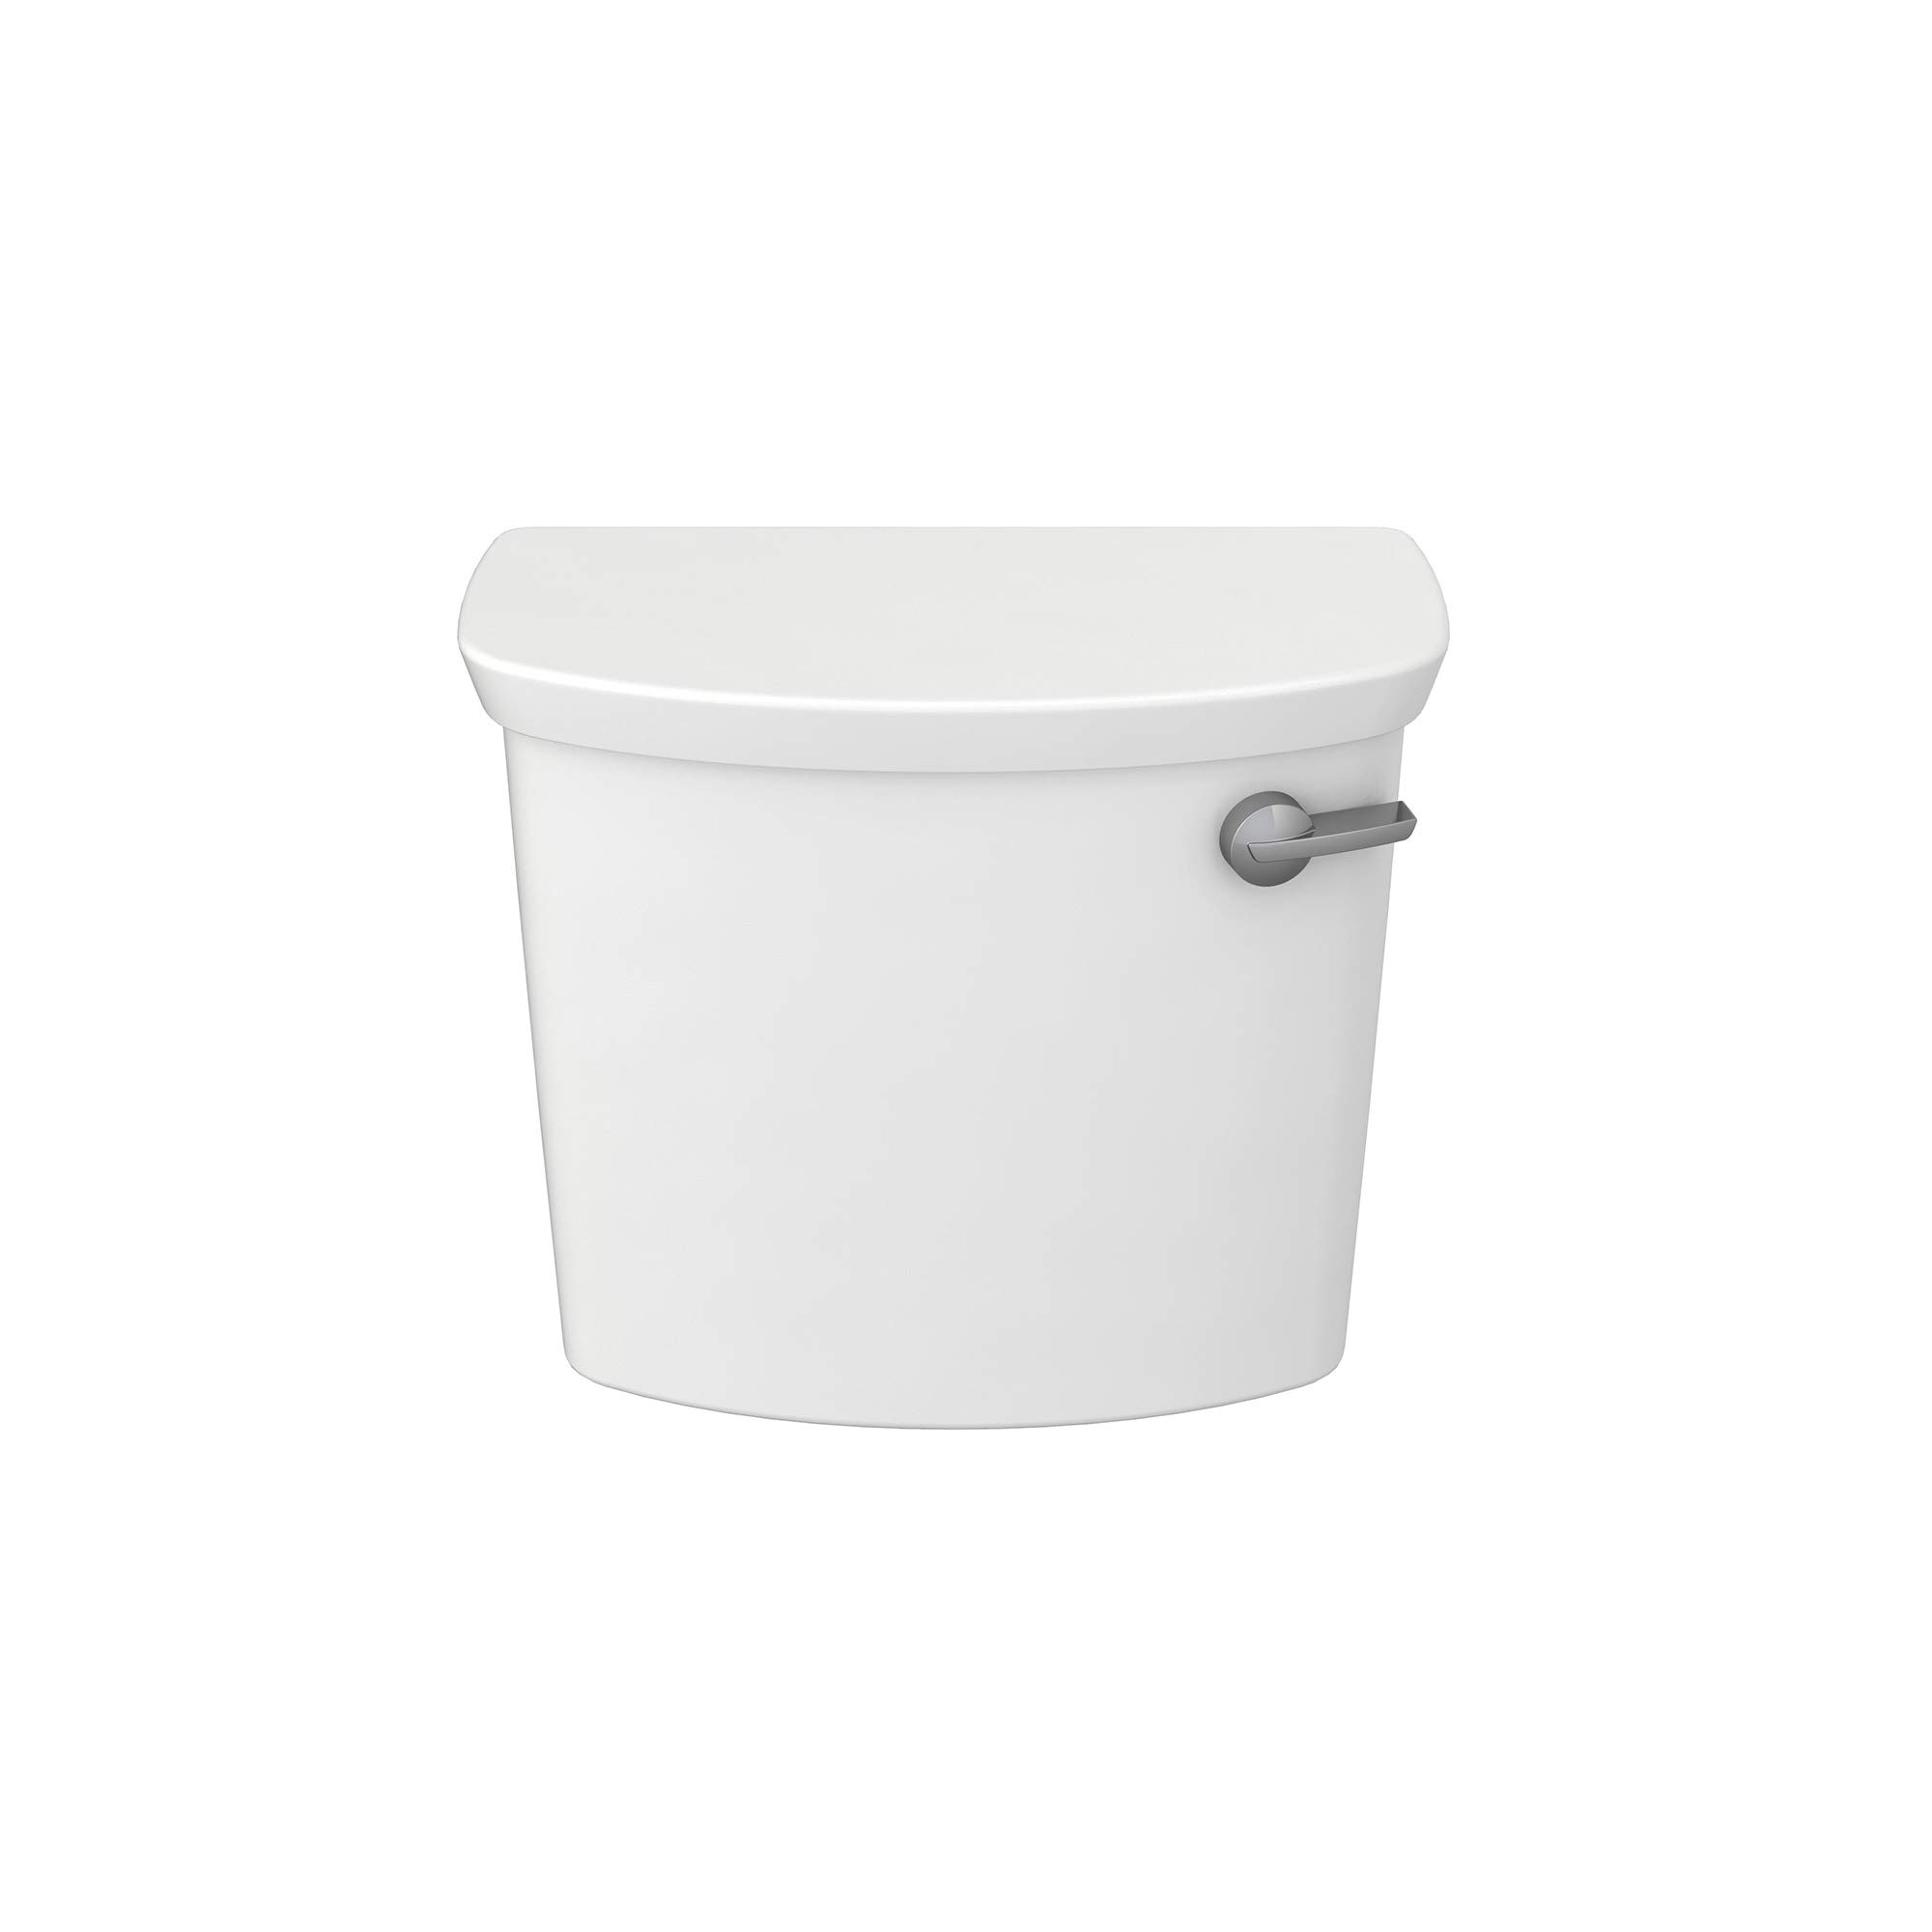 American Standard 4385A138.020 Yorkville VorMax Toilet Left-Hand Trip Lever with Tank Cover Locking Device, White